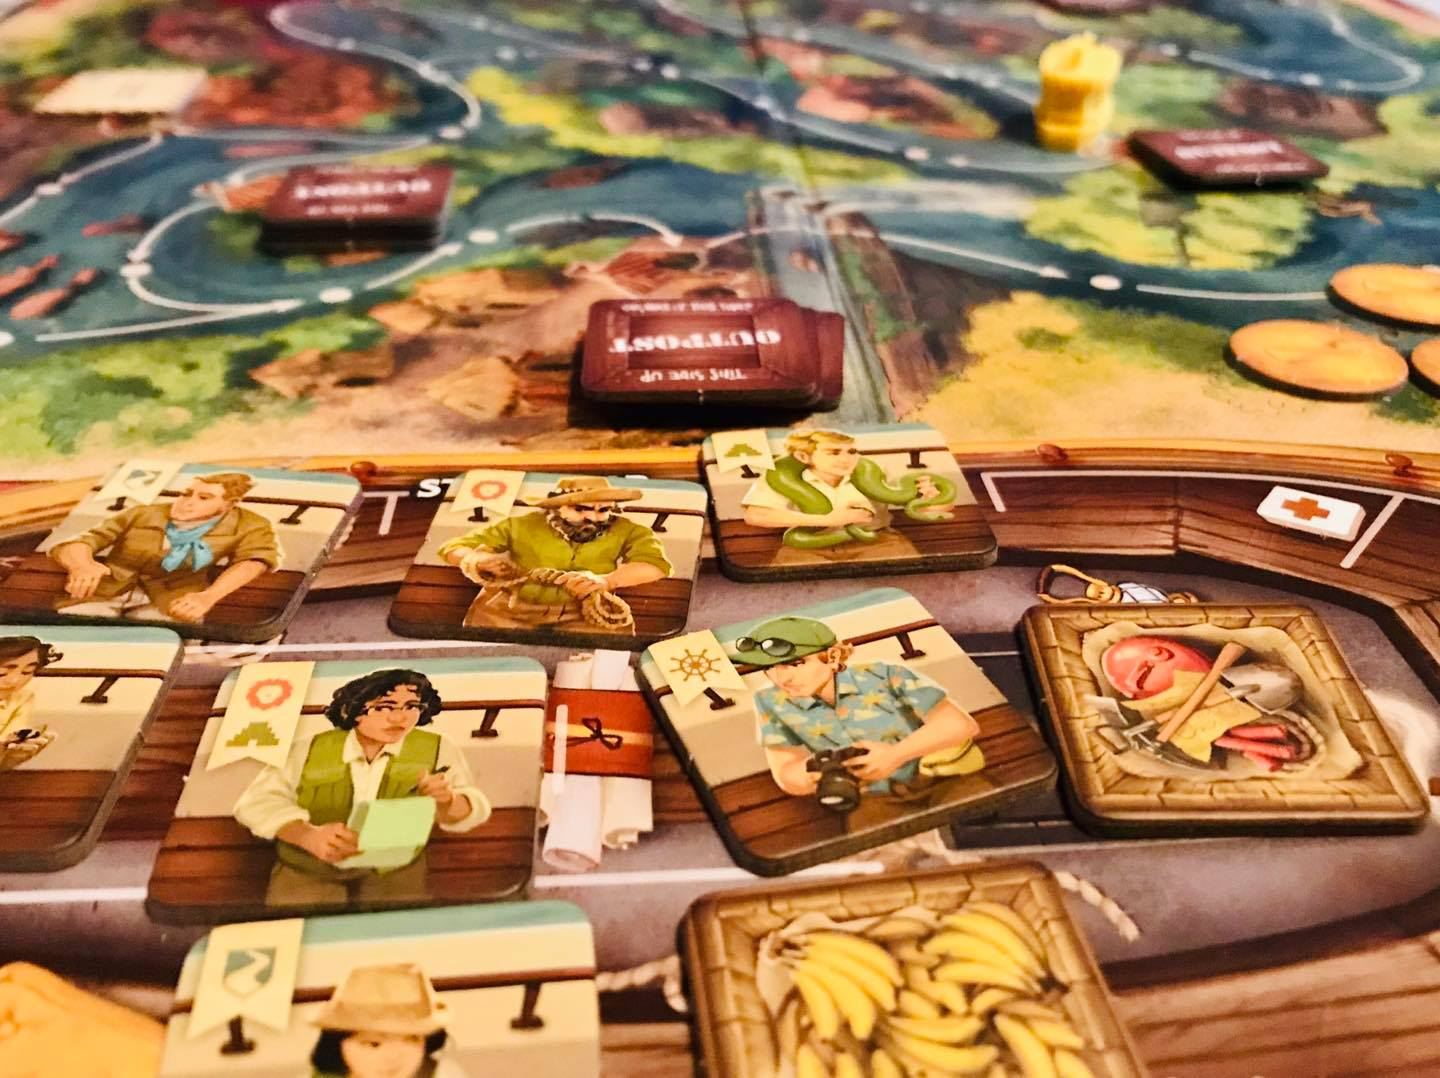 jungle cruise board game review from battlehops brewing board game cafe houston